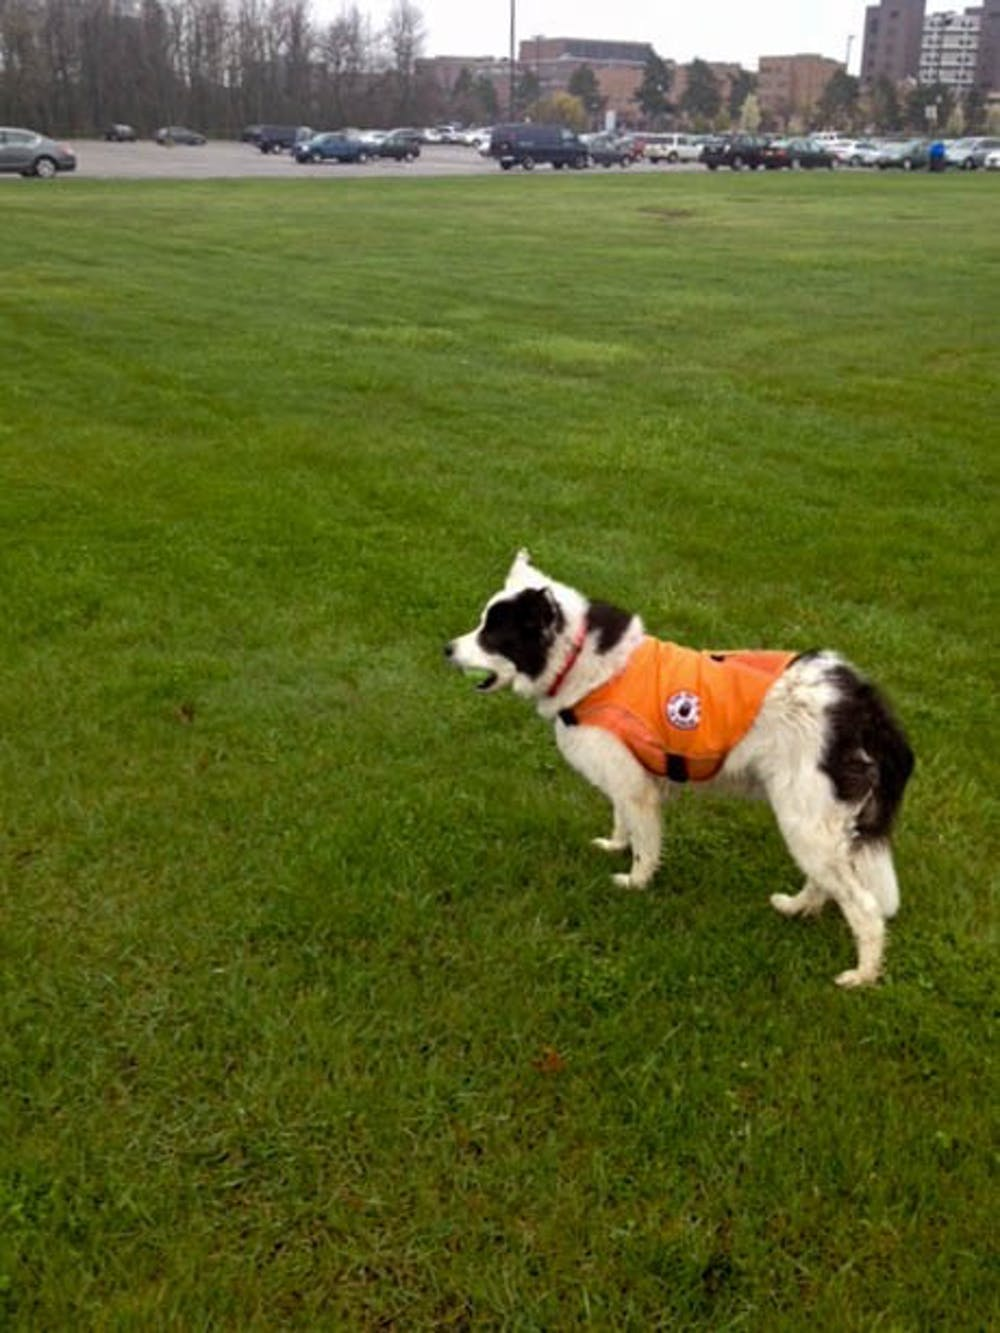 <p>In 2016, UB hired Borders on Patrol to address the large number of nuisance geese on campus. The company utilizes border collies to chase and harass geese off certain areas on campus.</p>